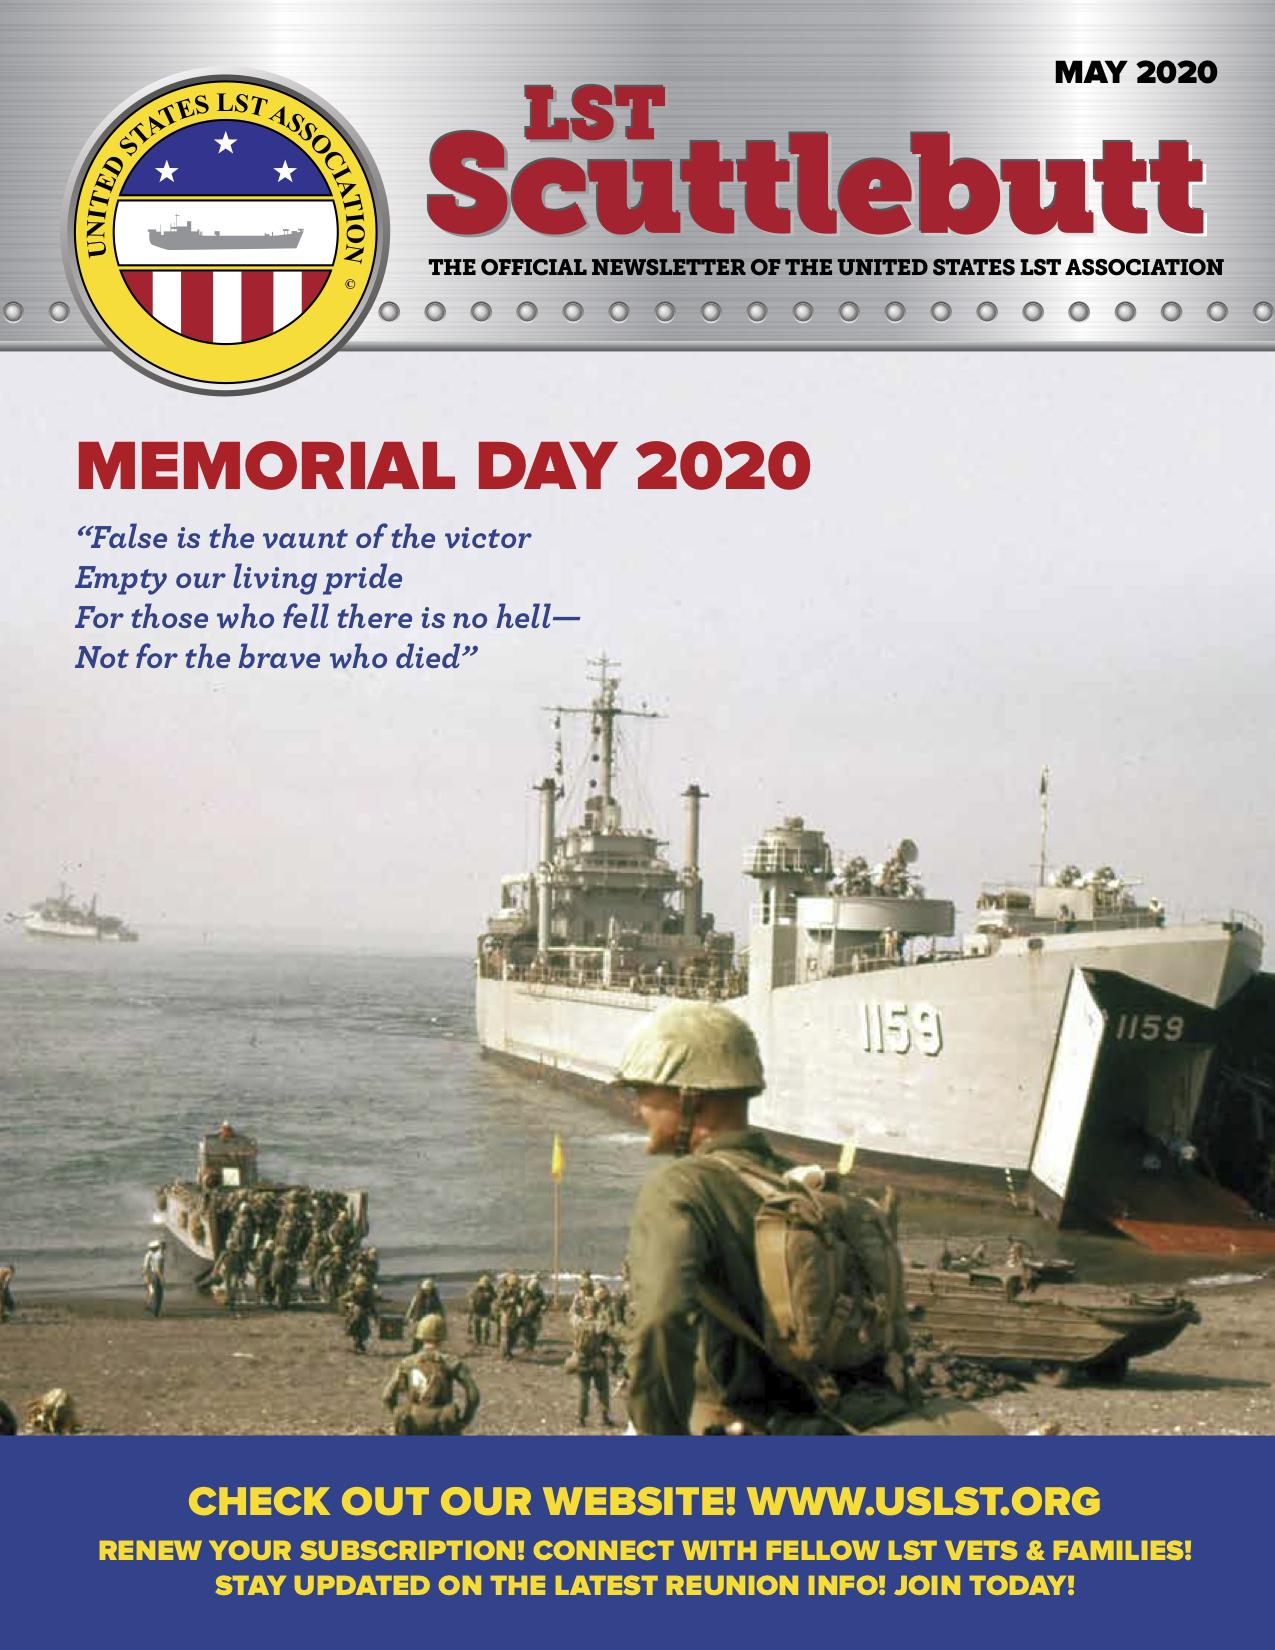 Scuttlebutt Issue 23 May 2020 COVER